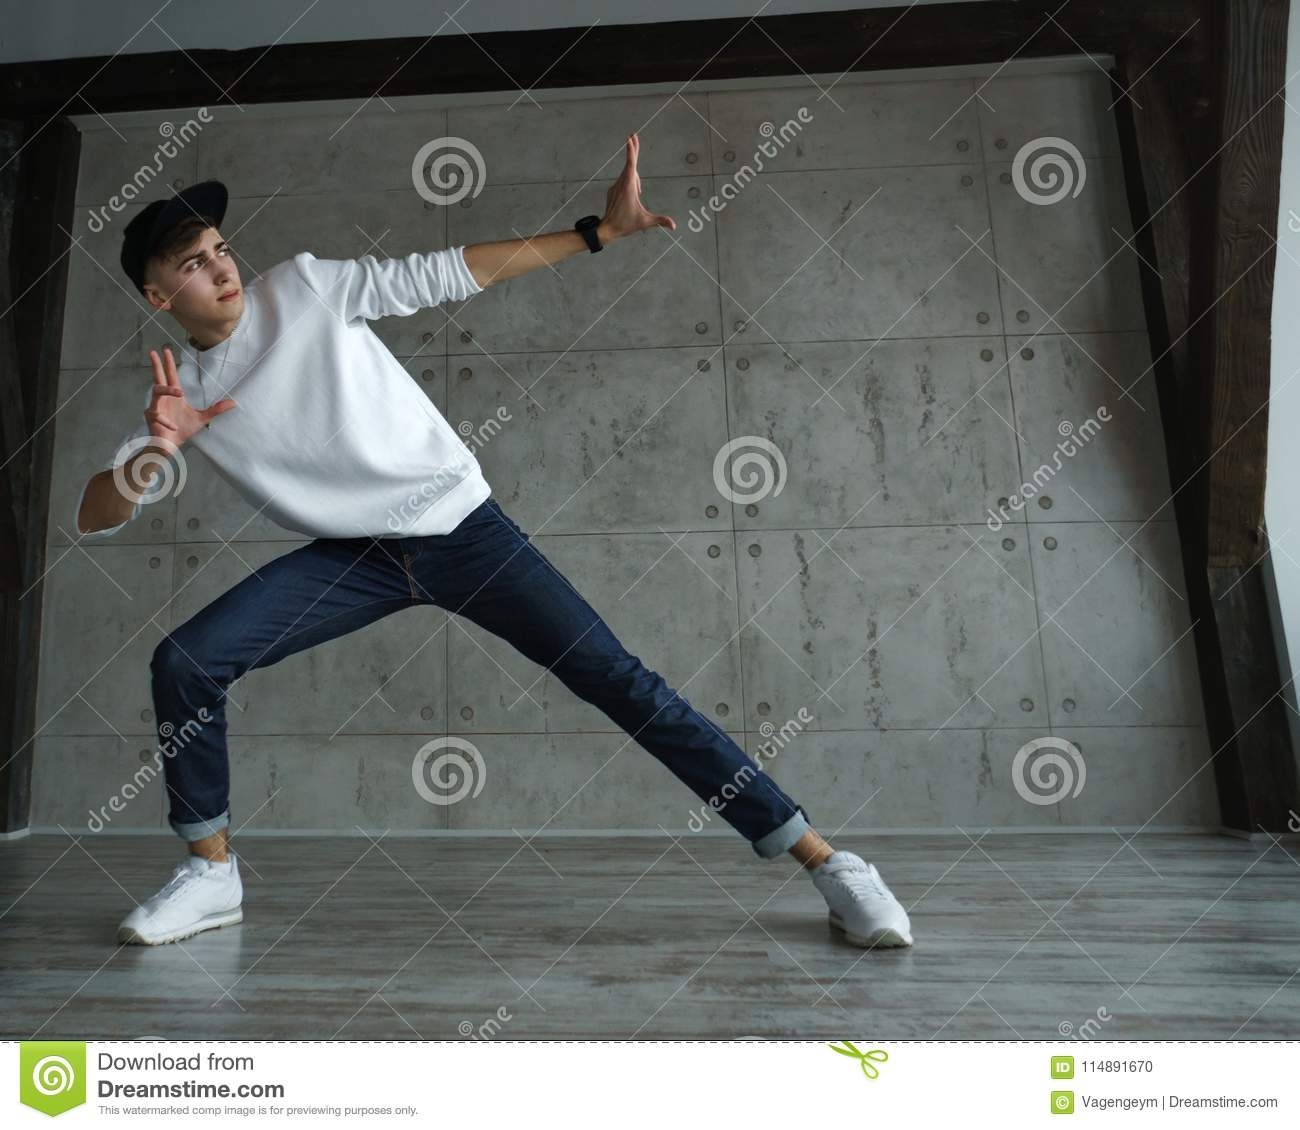 Teenager Boy Dancing Hip-hop Stock Photo - Image of model, looking on the worm dance, the hippo dance, the dog dance, the orc dance, the bee dance, the hat dance, the crab dance, the duck dance, the bird dance, the tiger dance, the bear dance, the deer dance, the ball dance, the snake dance, the butterfly dance, the pumpkin dance, the rabbit dance, the dolphin dance, the dragon dance, the dagger dance,